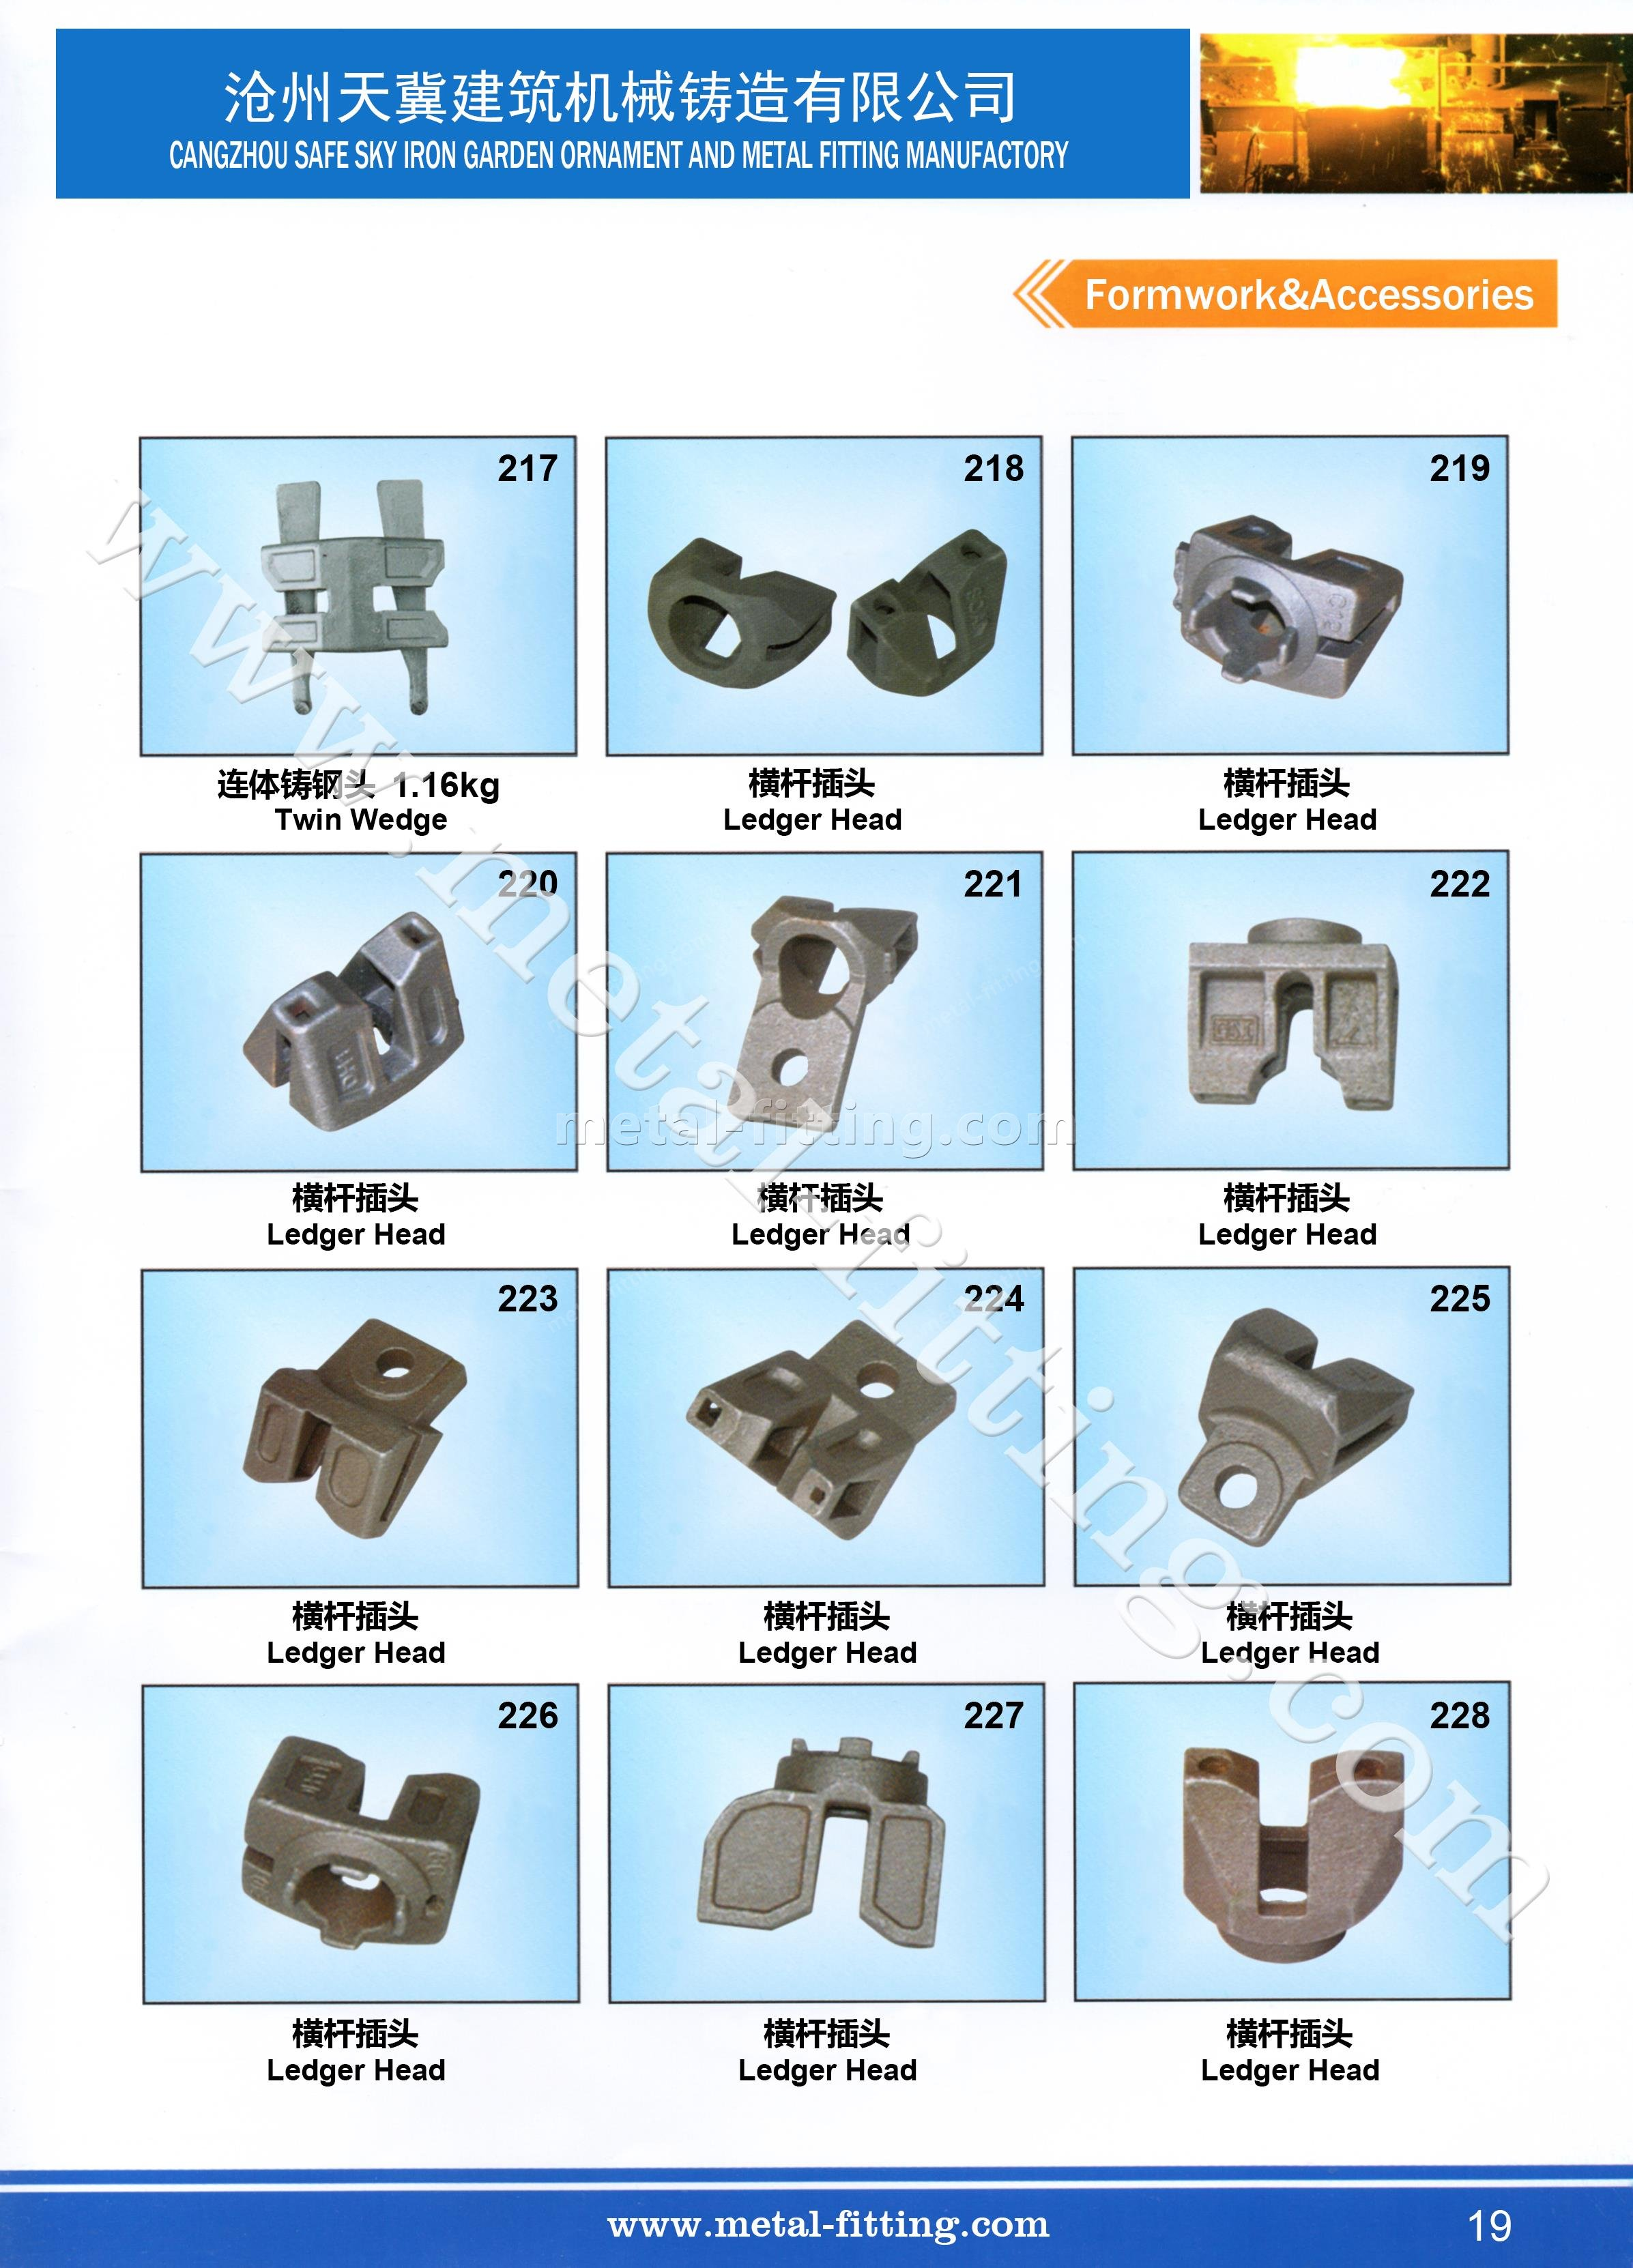 casting steel metal fitting, scaffolding system-19